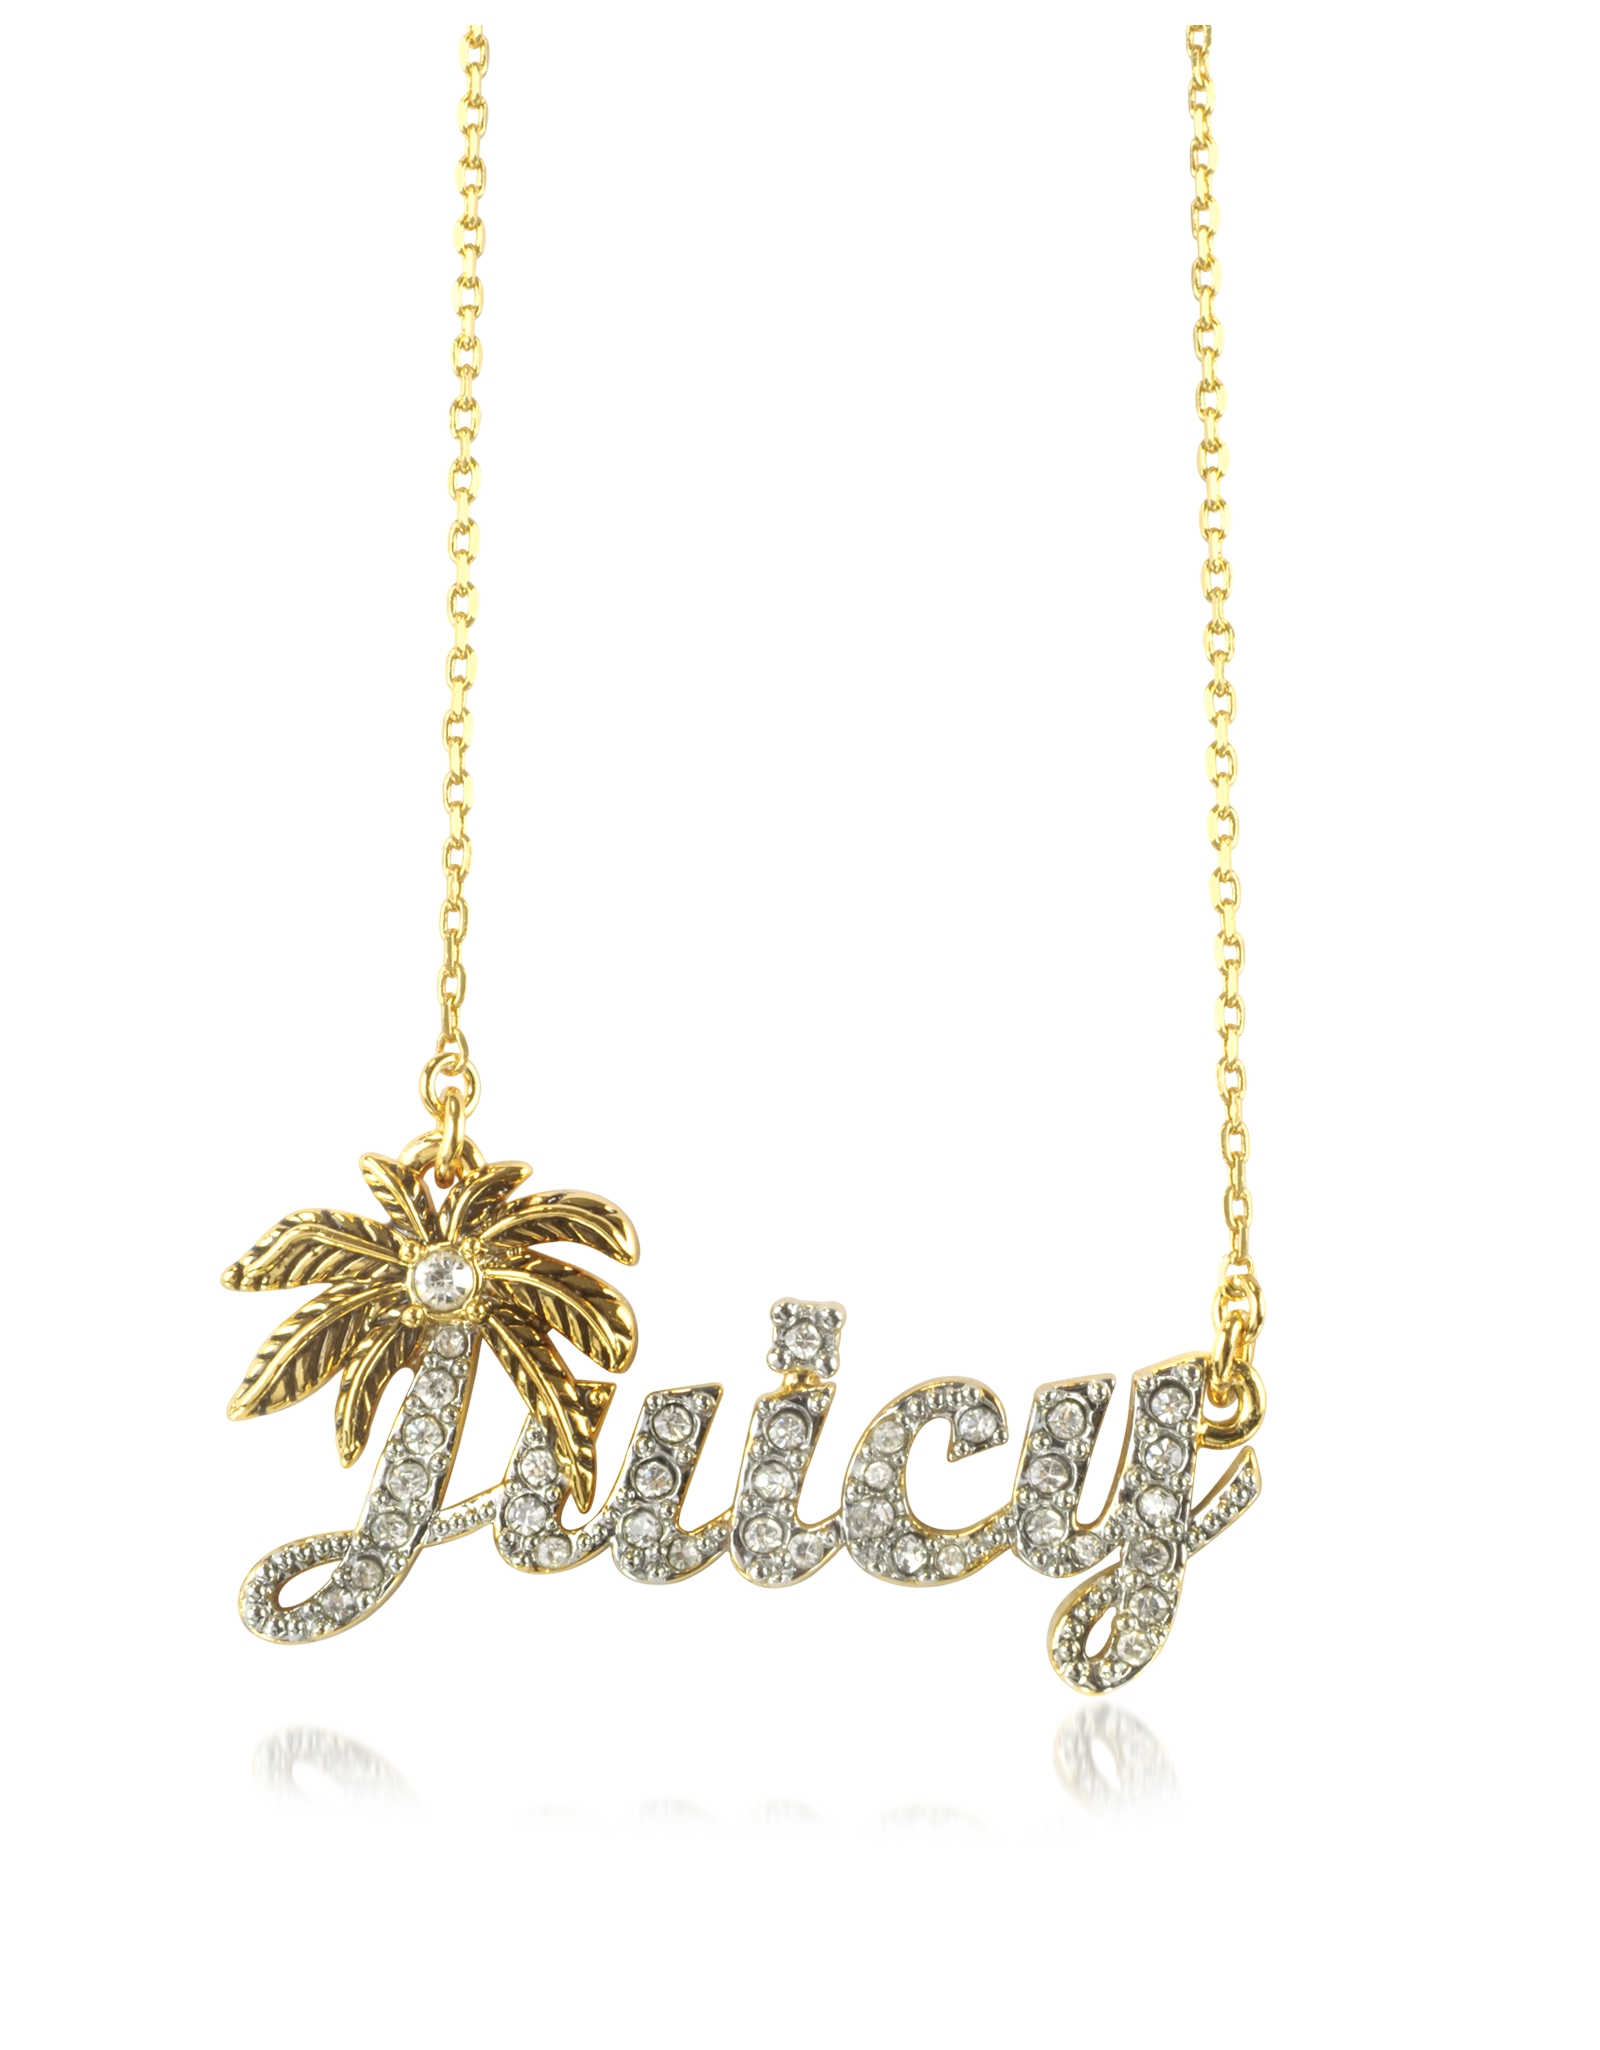 Lyst juicy couture juicy palm signature necklace in metallic for Juicy couture jewelry necklace